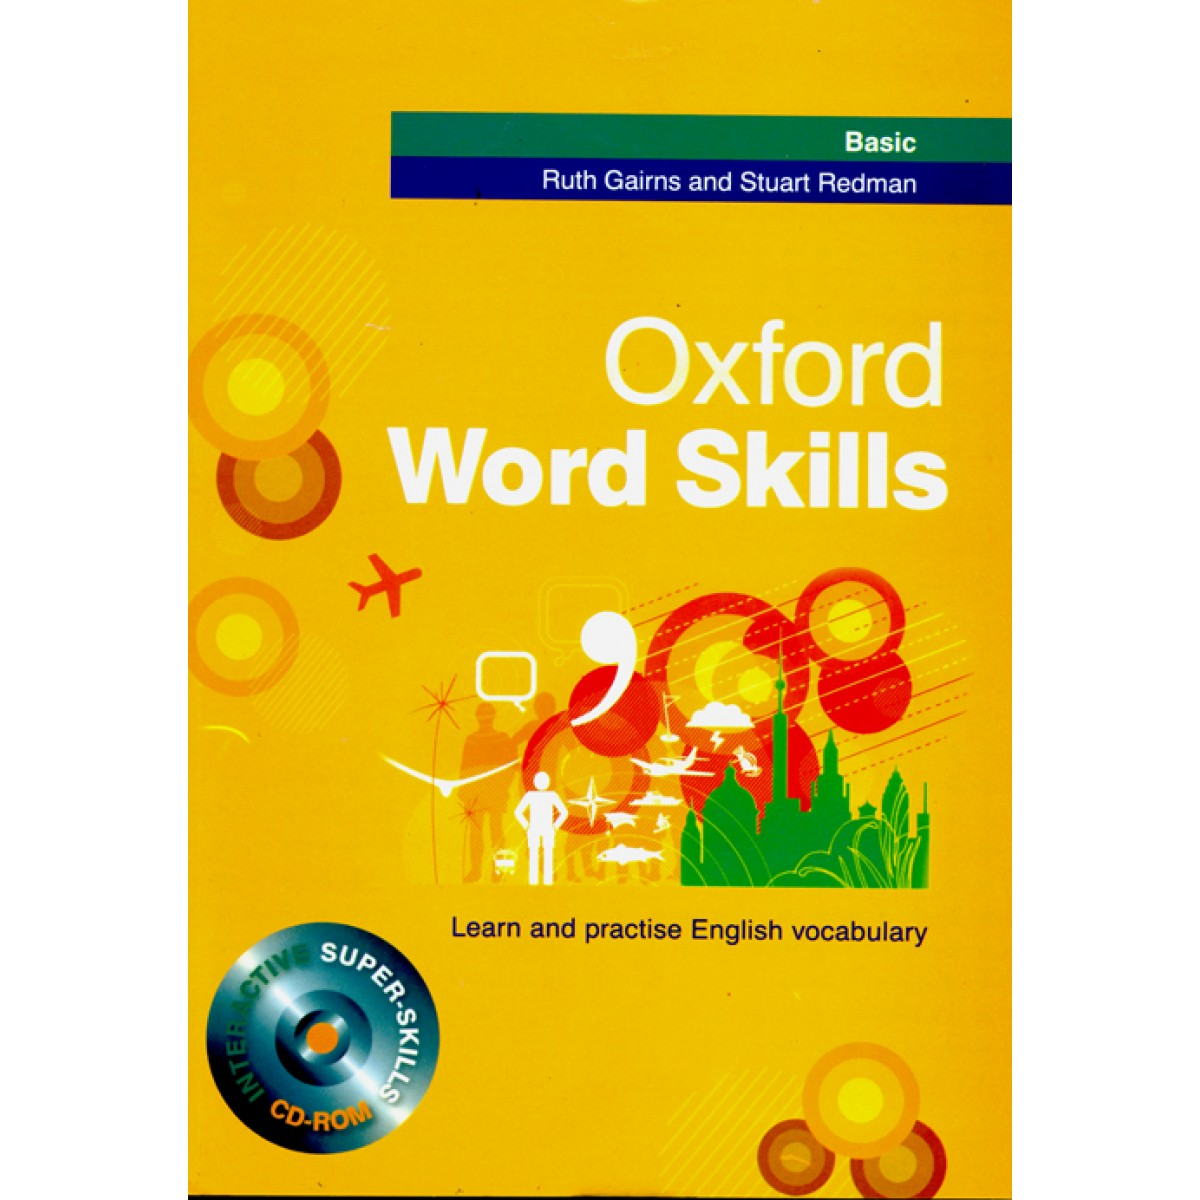 Oxford Word Skills Basic+CD (جنگل)